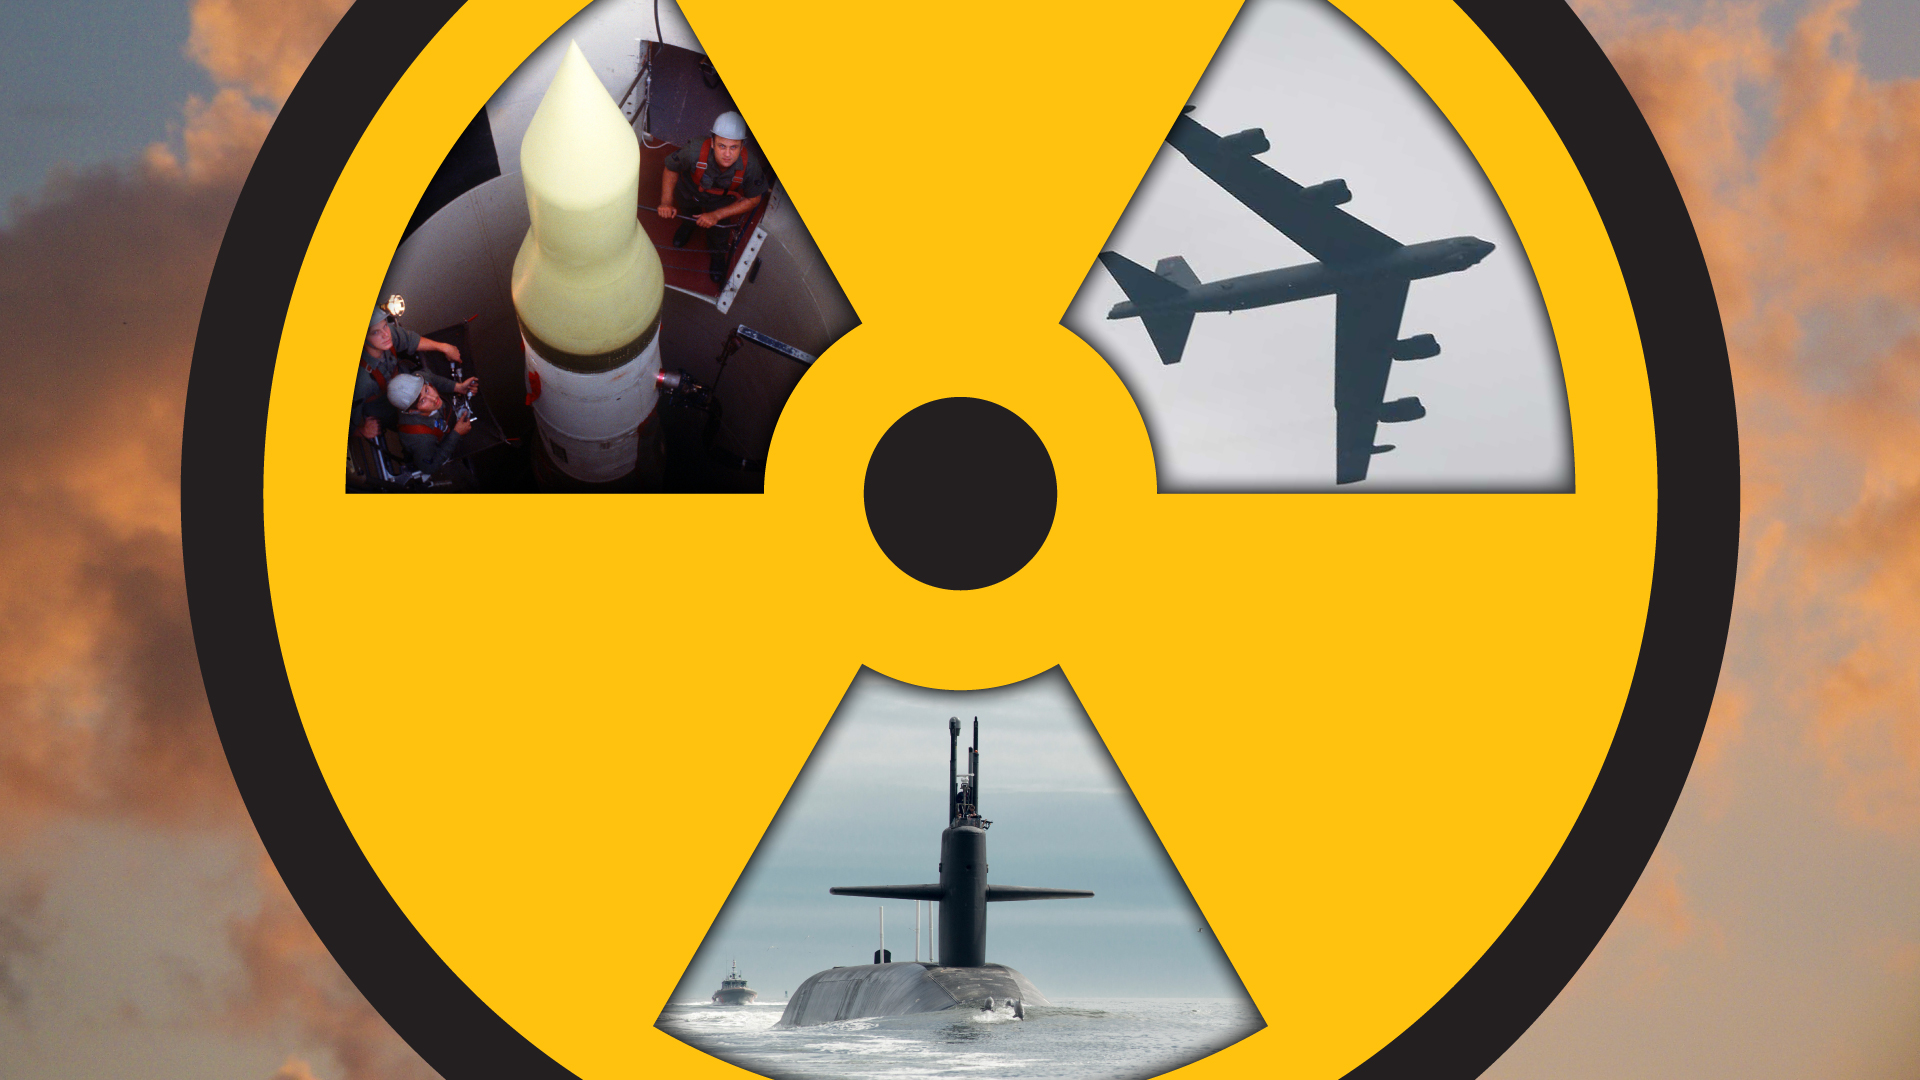 Nuclear modernization costs: $400B over 10 years